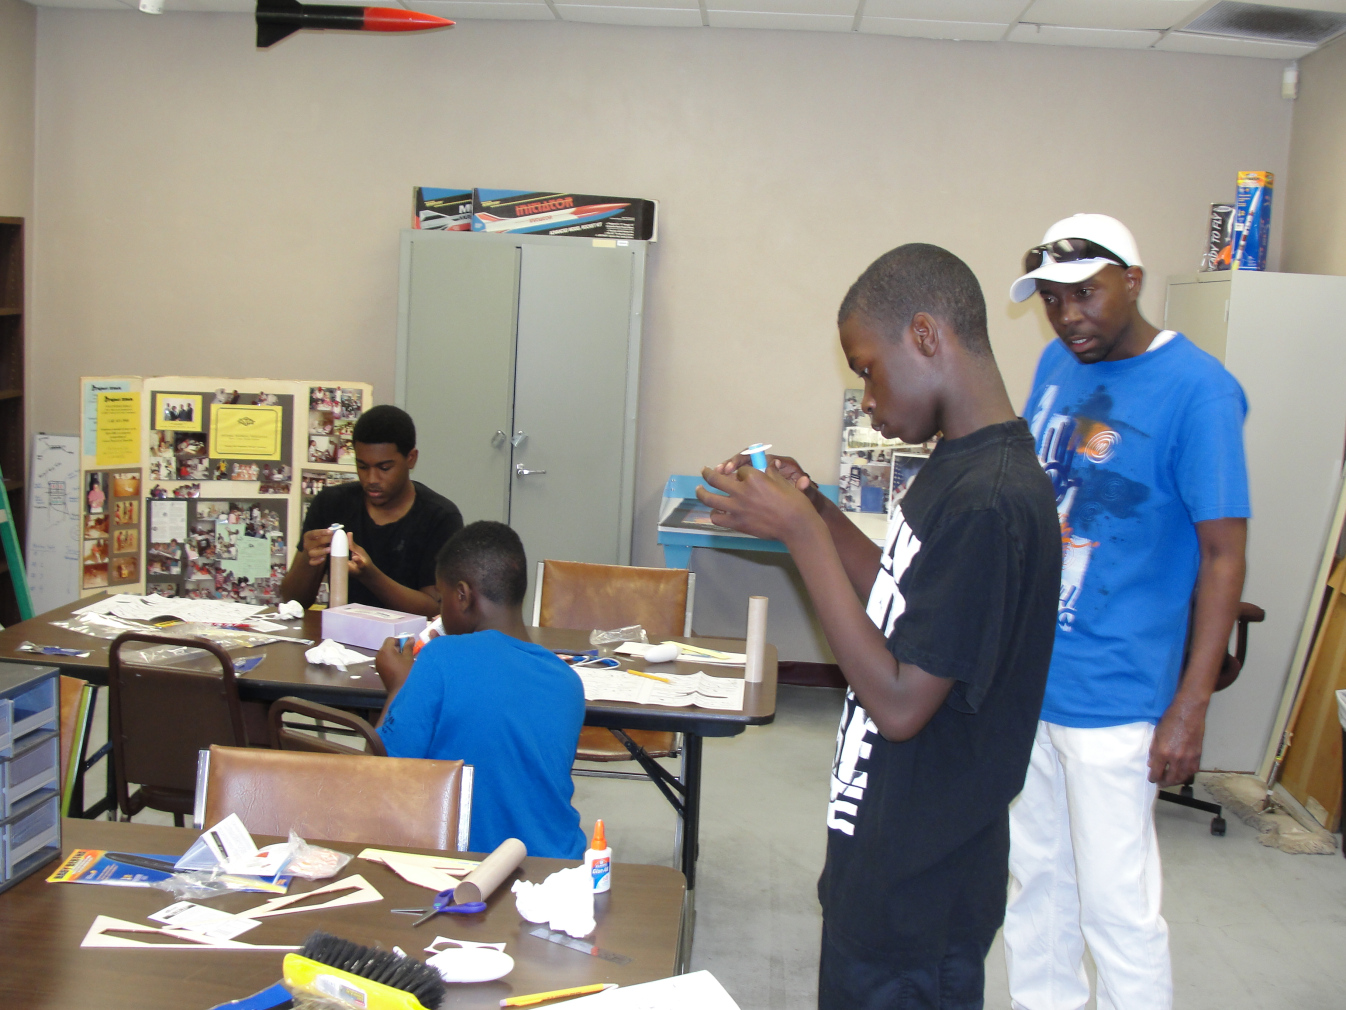 Students assembling model rockets